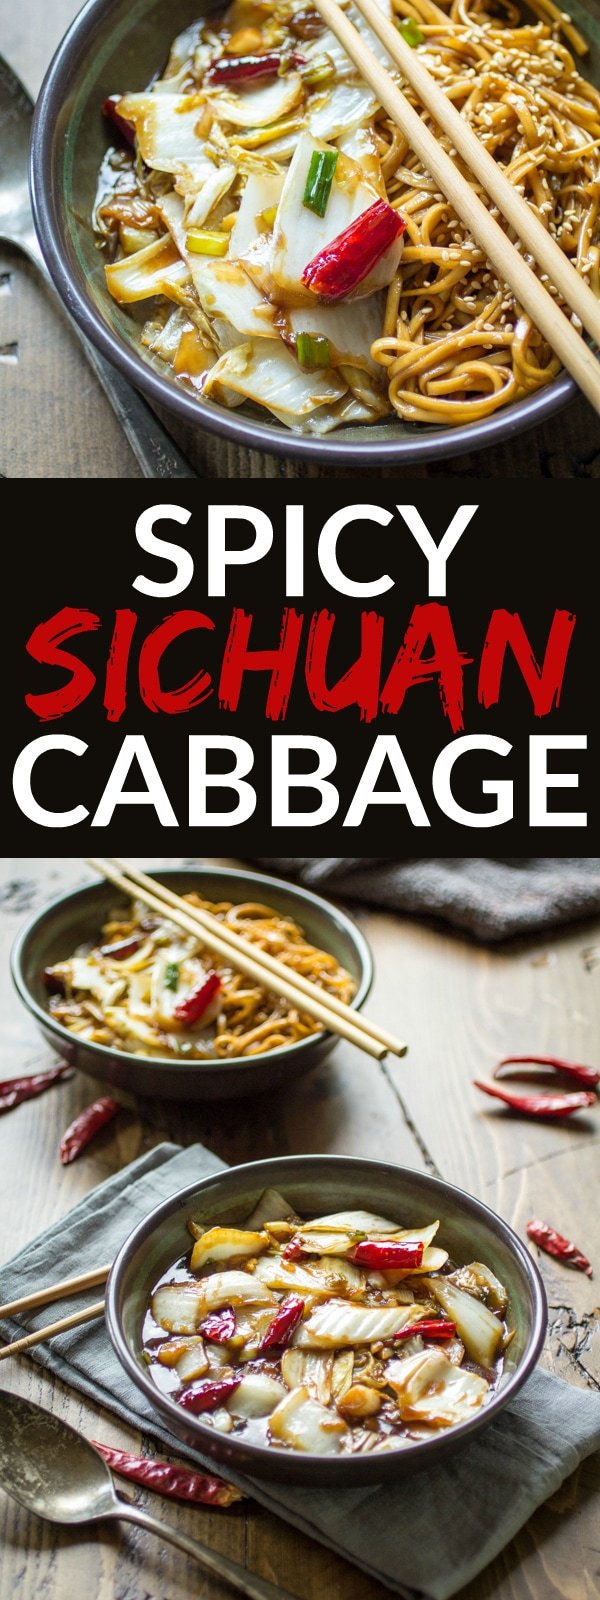 Spicy Sichuan Cabbage | This hot and sour stir-fry features crunchy napa cabbage, fiery red chiles, and bright green onion. The perfect 20-minute side dish for Chinese food at home!